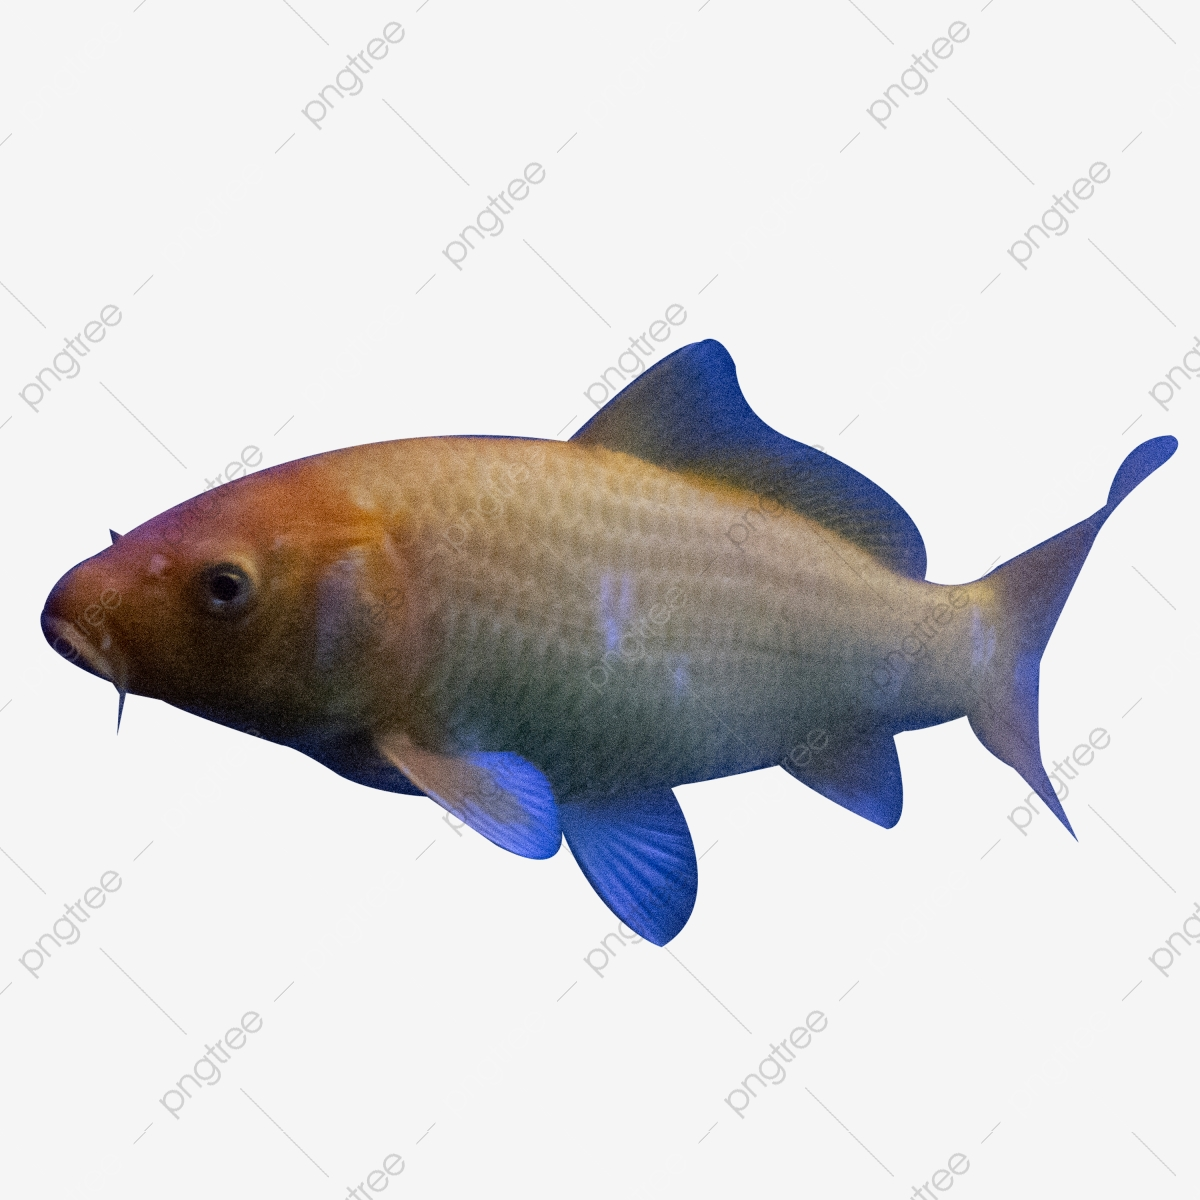 Fish Png Images Vector And Psd Files Free Download On Pngtree Discover 5426 free fish png images with transparent backgrounds. https pngtree com freepng ornamental fish 4483447 html